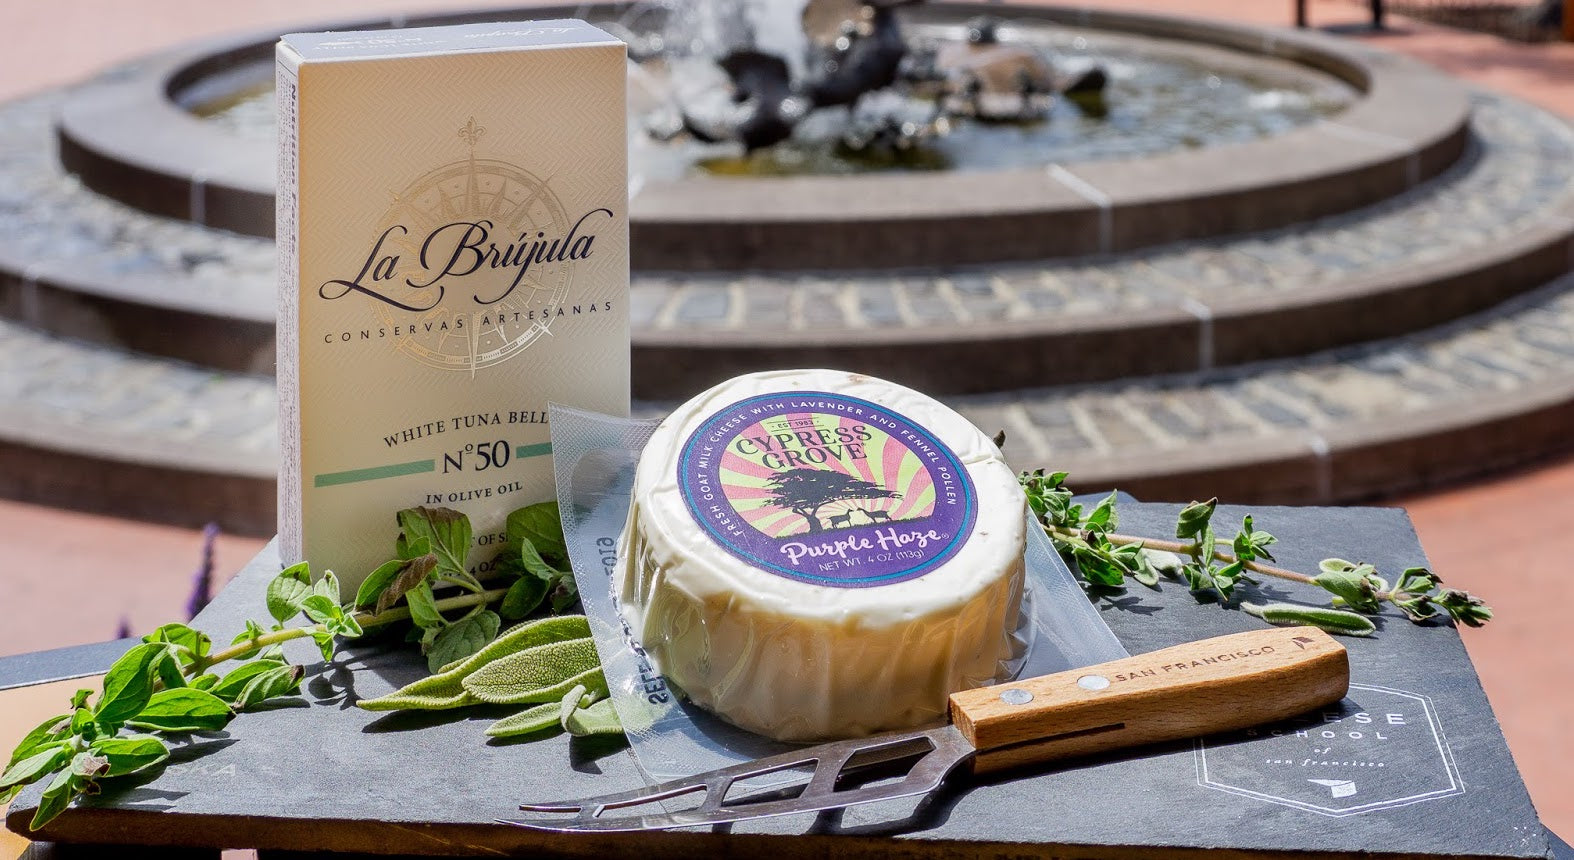 BLOG: In the Spotlight: Fresh Goat's Milk Cheeses